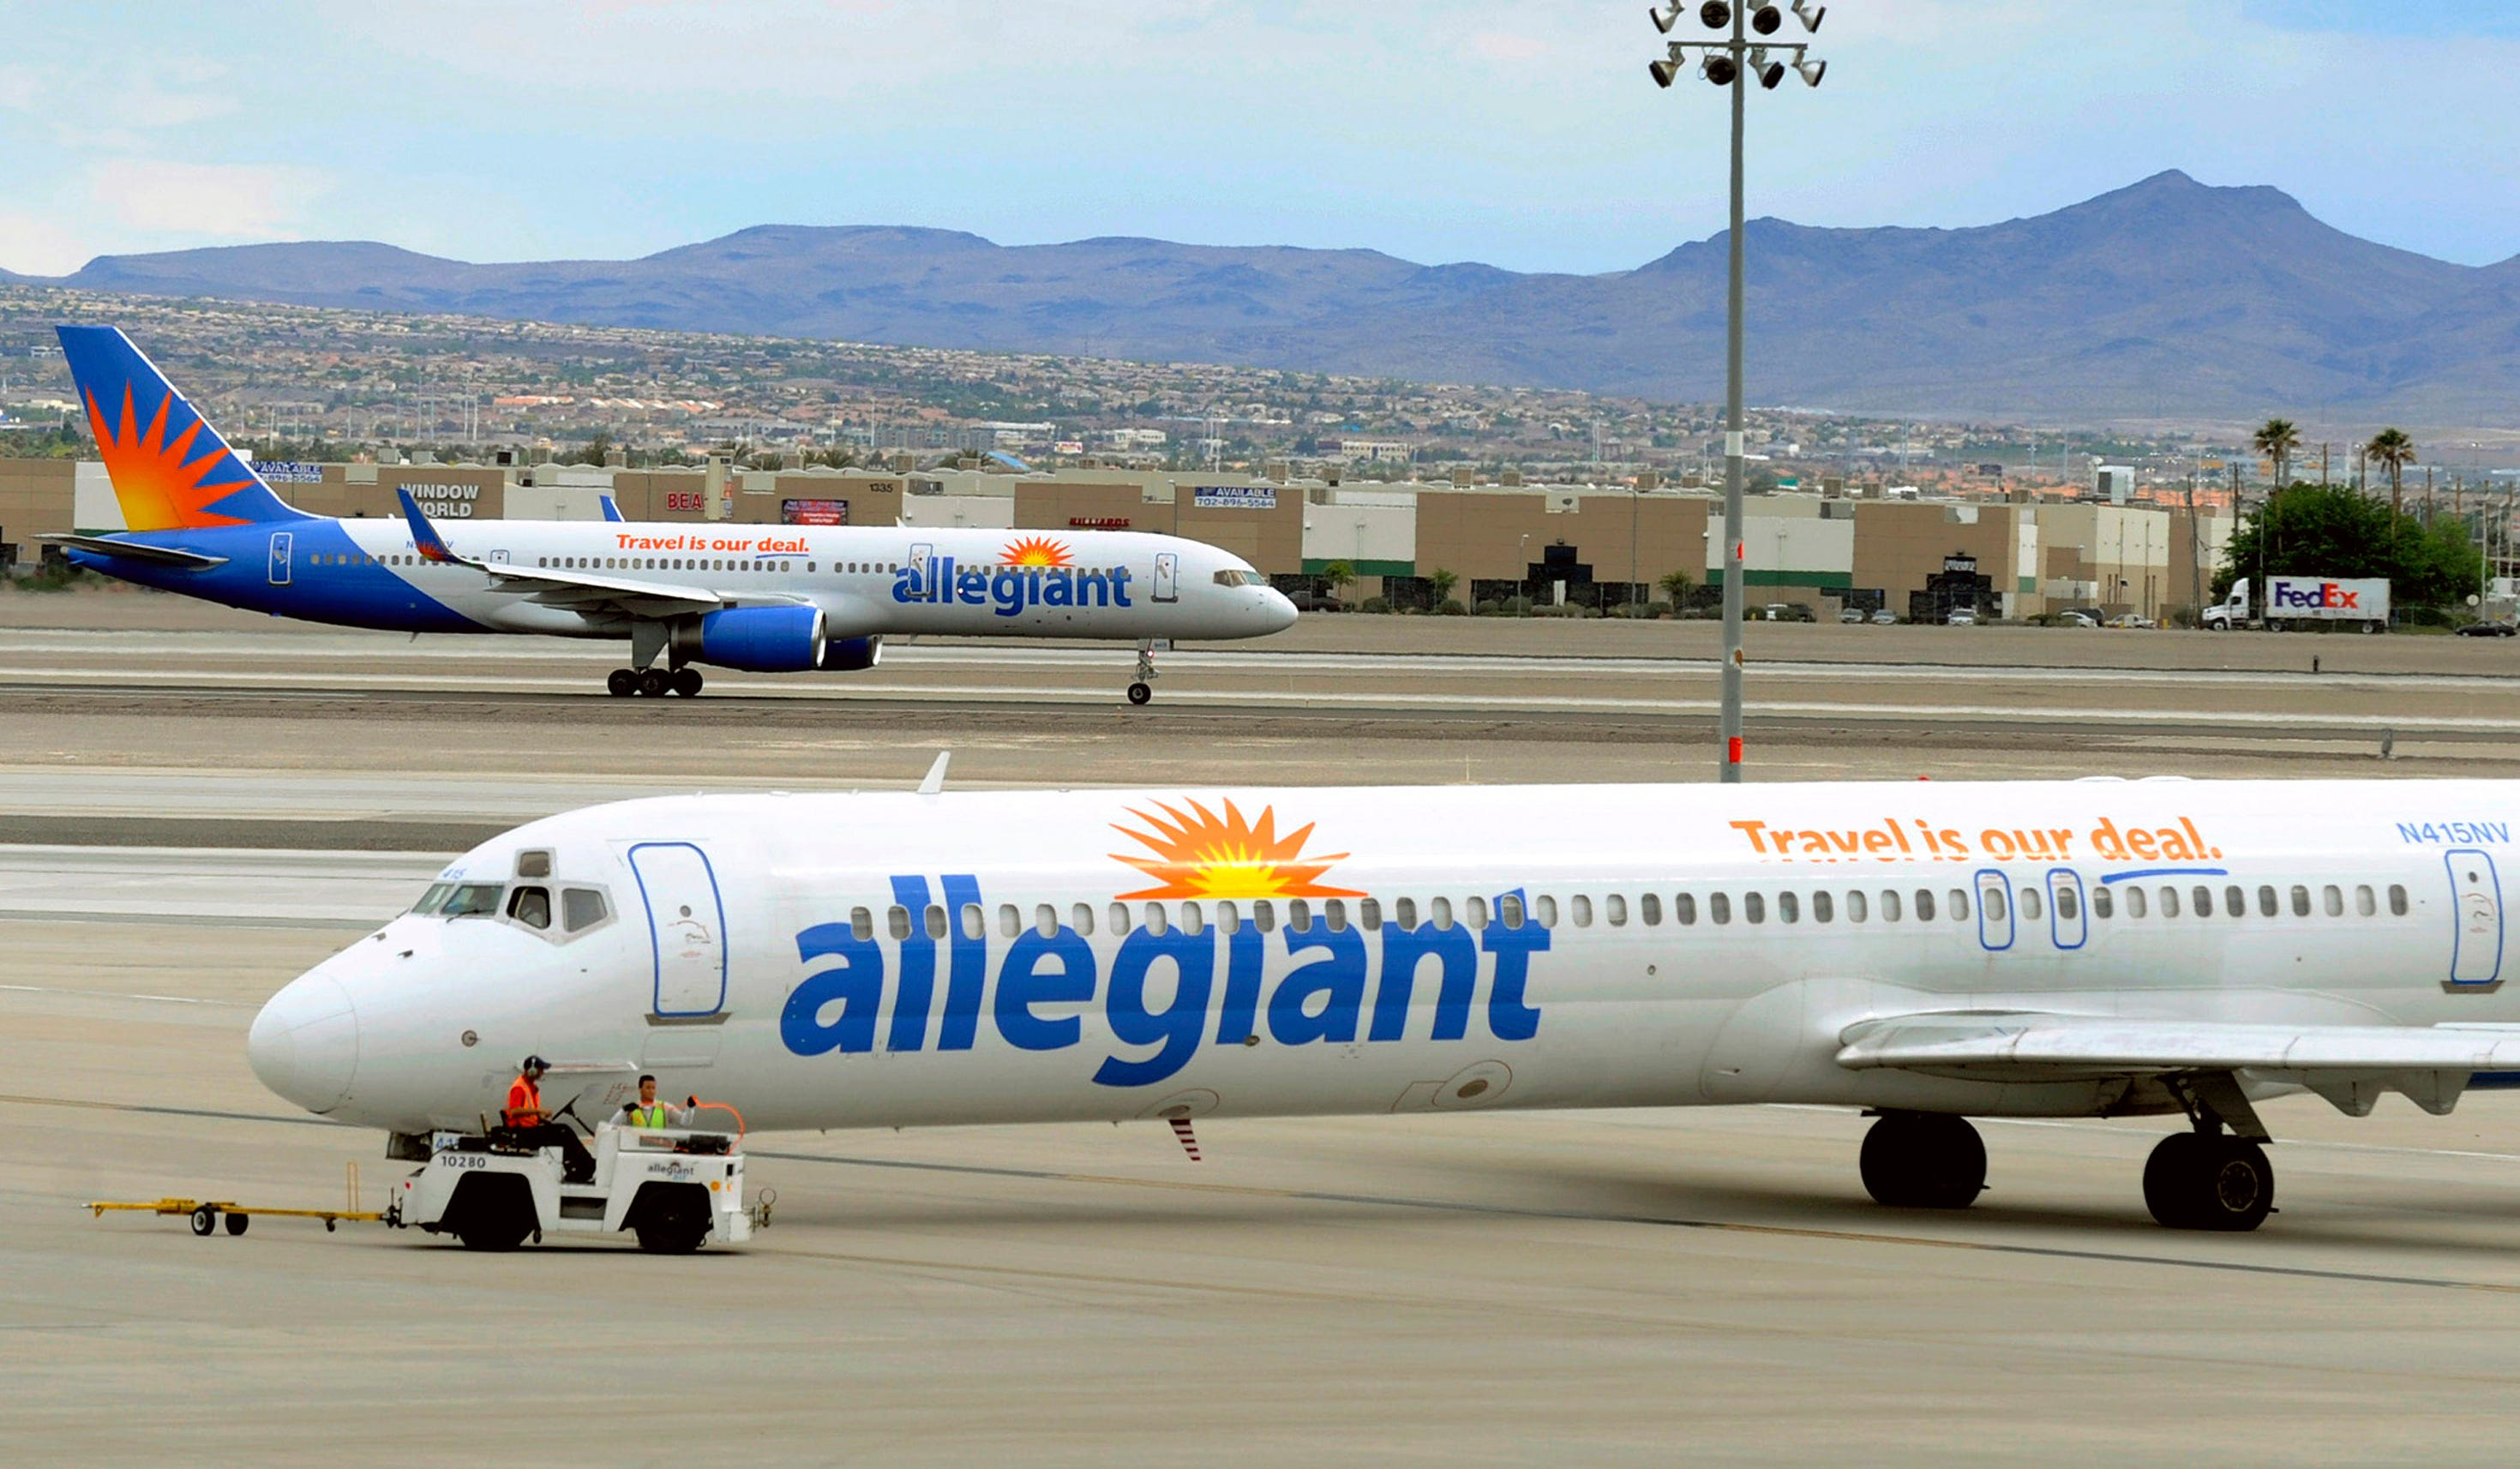 Slide 2 of 9: Allegiant Air Who must wear: All passengers ages 2 and older Medical exemptions: Passengers with medical conditions that prevent the use of a face covering must present documentation from a medical doctor to the gate agent one hour prior to departure. Prohibited face coverings: None Details:  Allegiant website